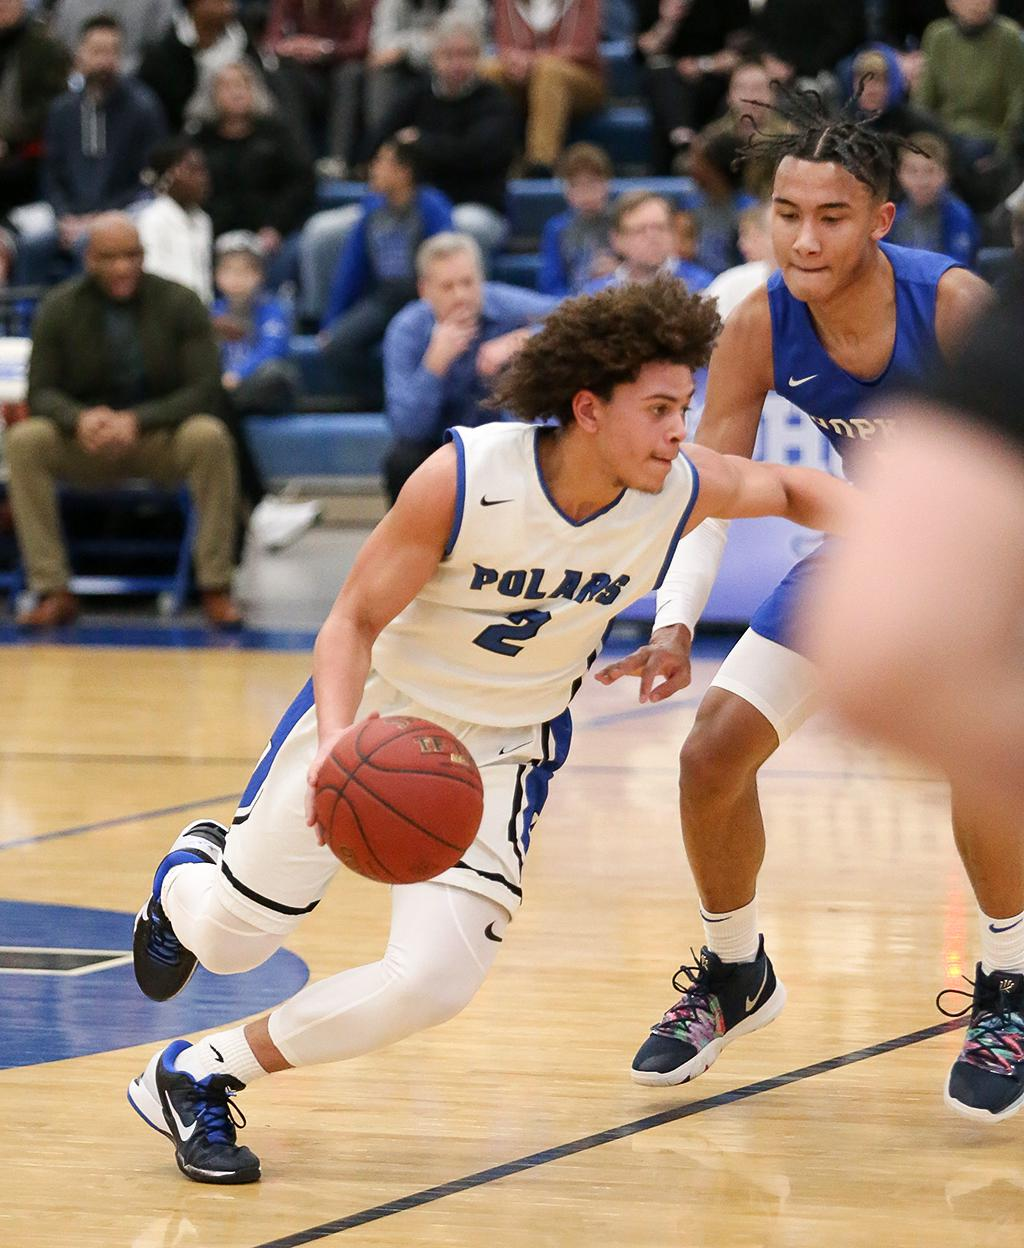 Hopkins dismantles Minneapolis North with a second-half rally